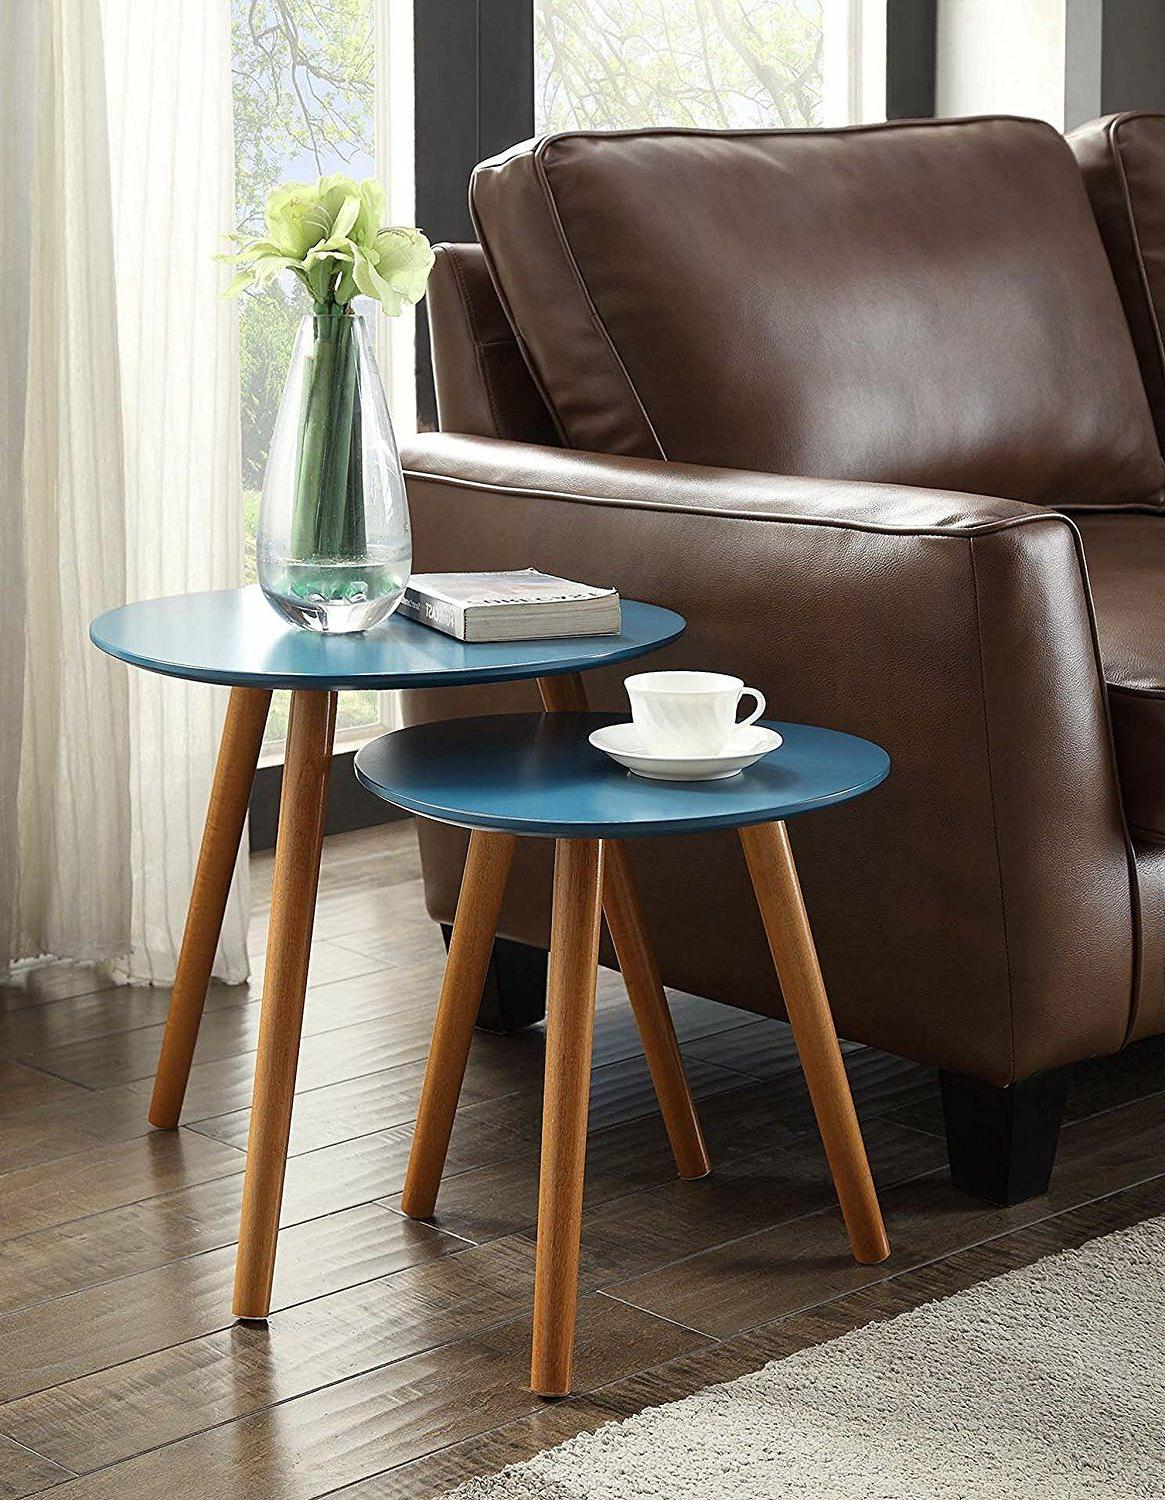 Round Two End Table Set Modern Coffee Sofa / TV Stand Living